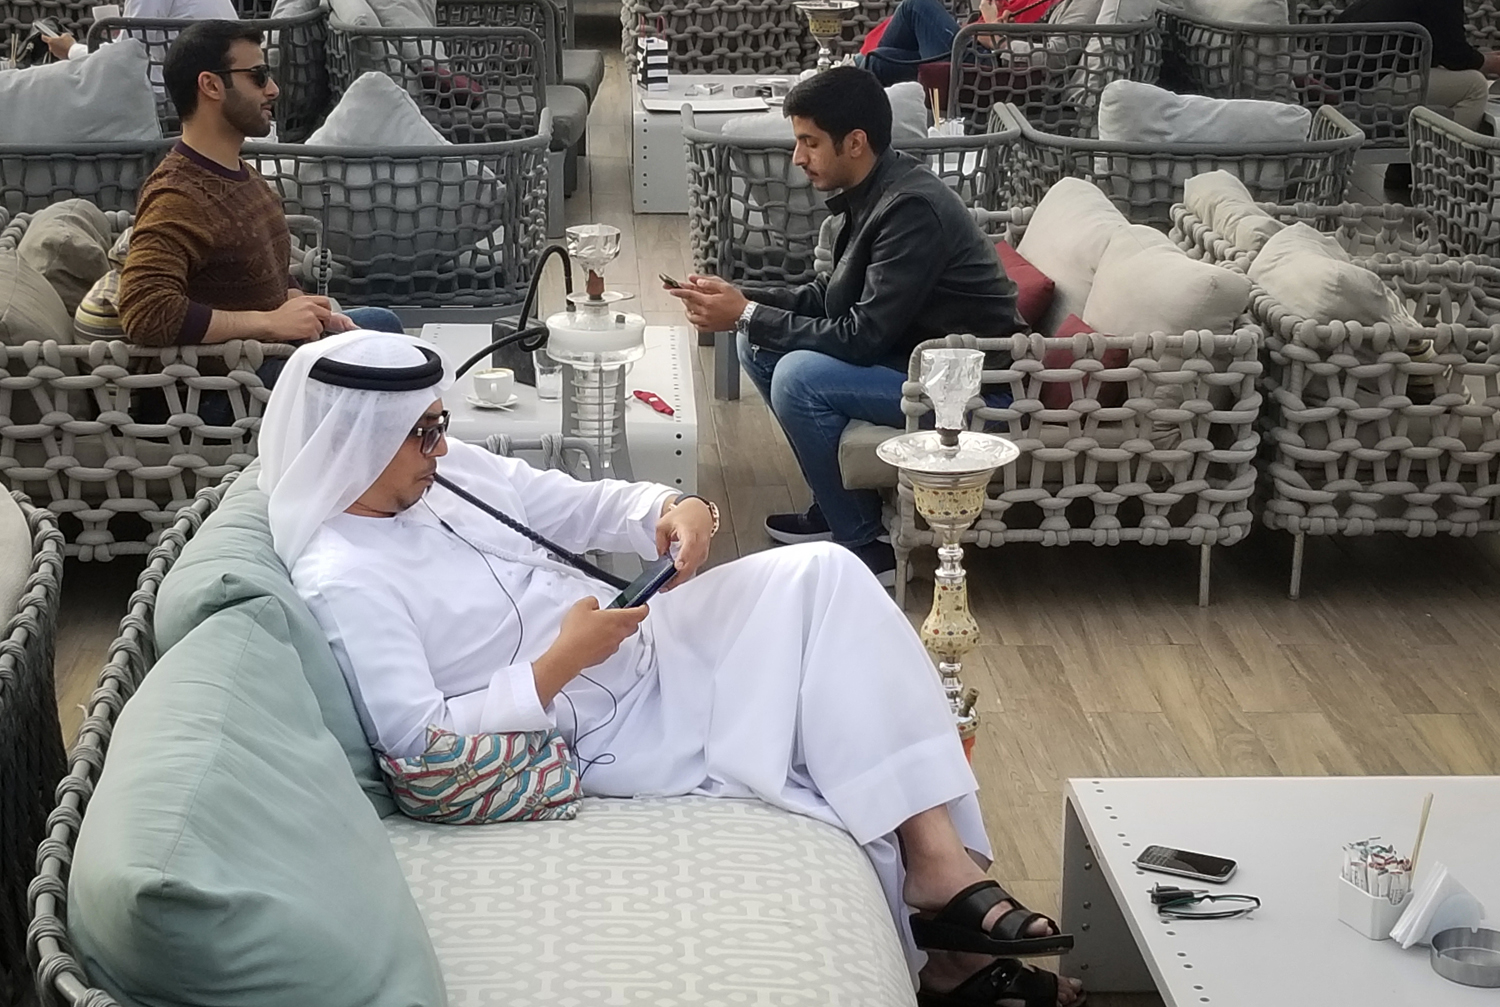 Arab man smoking a hookah.